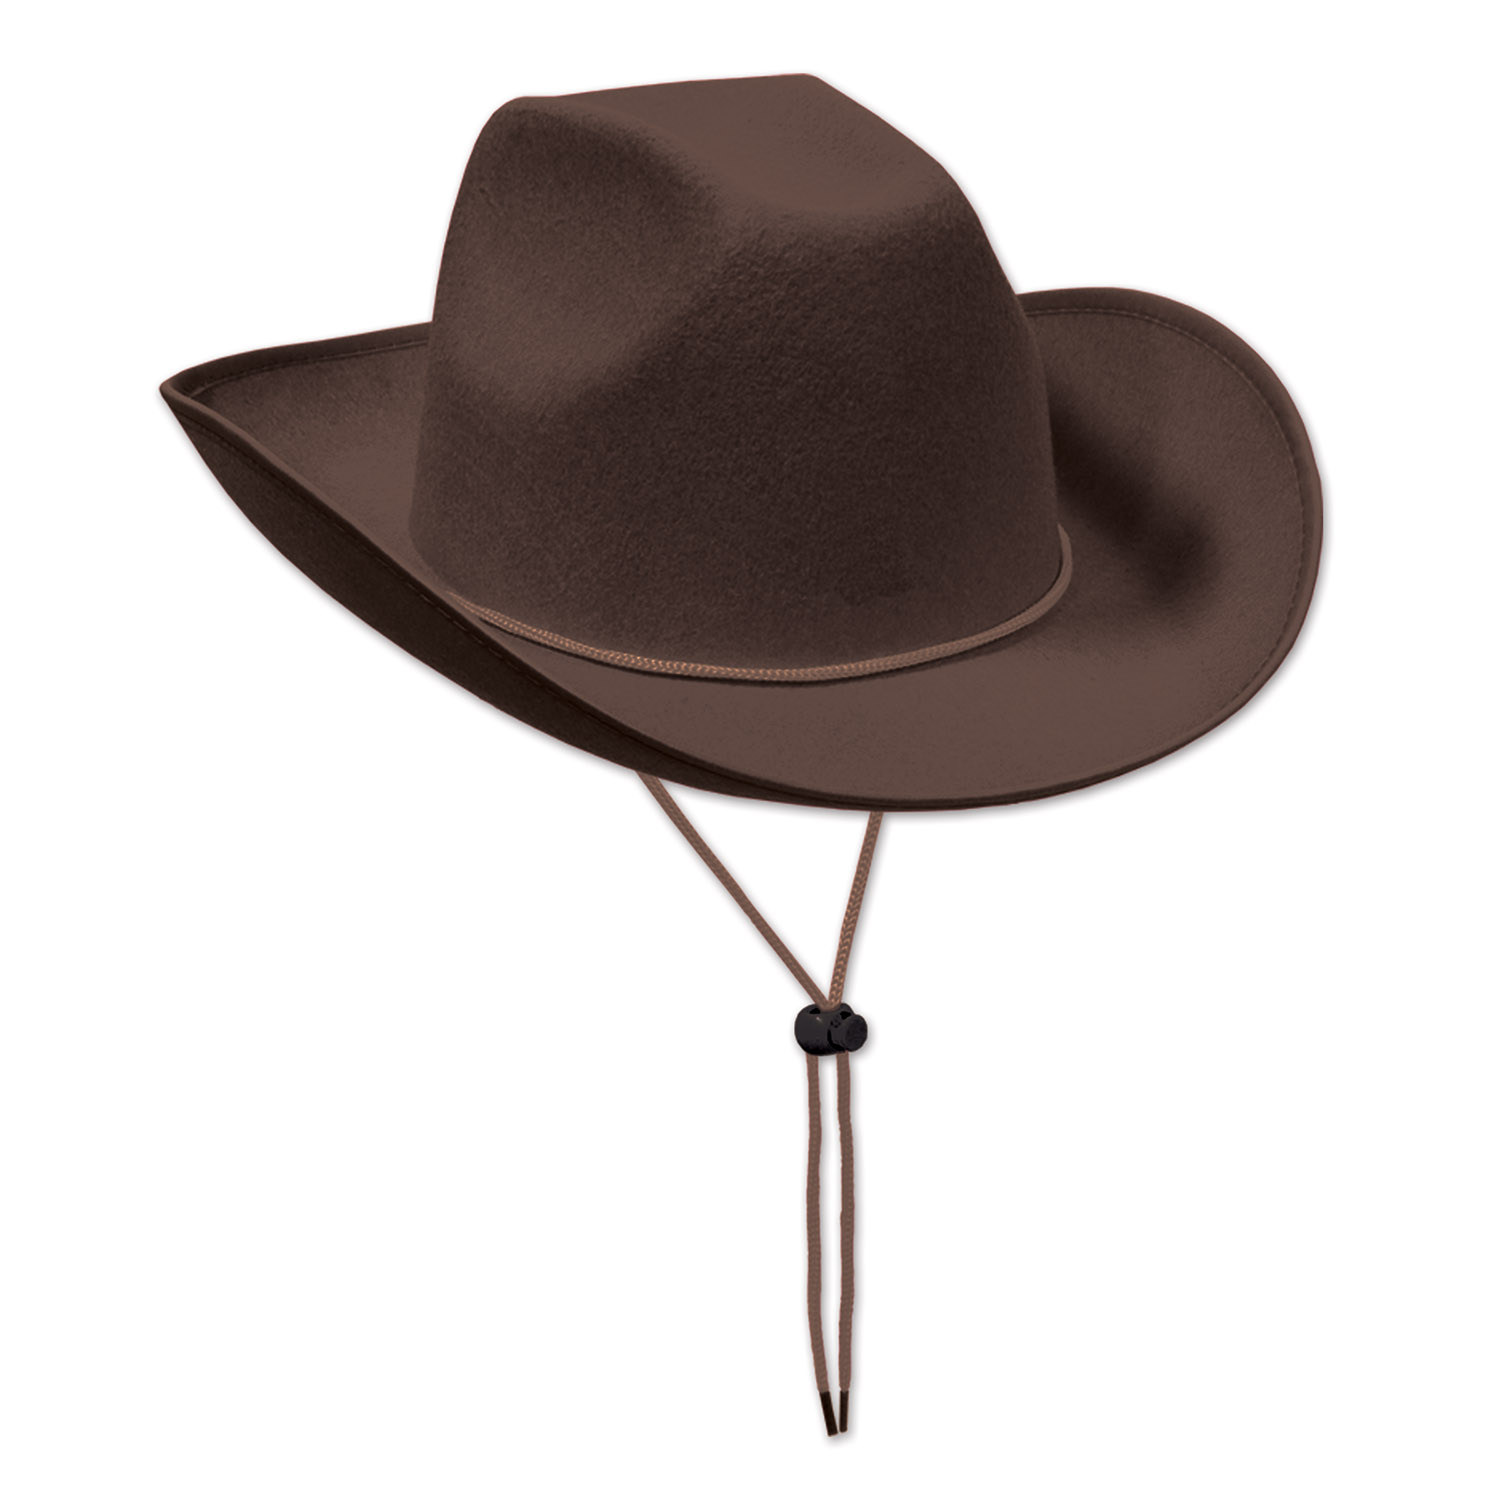 Brown felt western cowboy hat with drawstring.